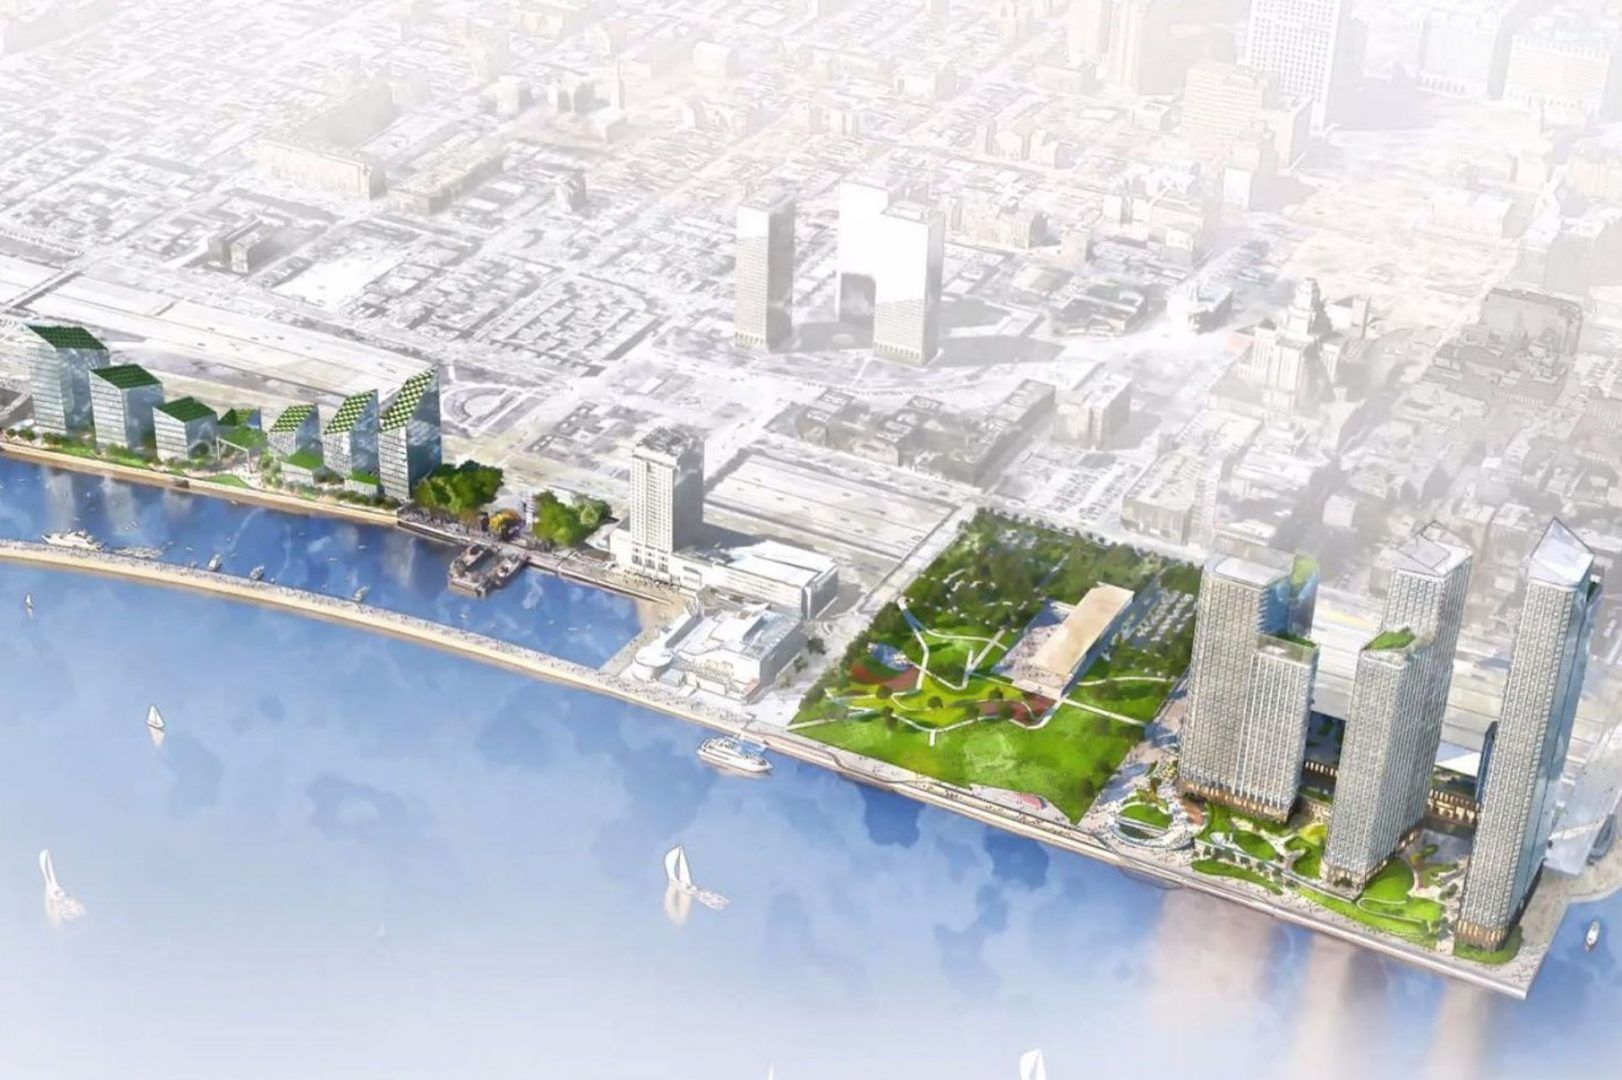 Durst Tapped For 2 2b Riverfront Redevelopment Scheme In Philadelphia Riverfront Waterfront Architecture Energy Efficient Heating